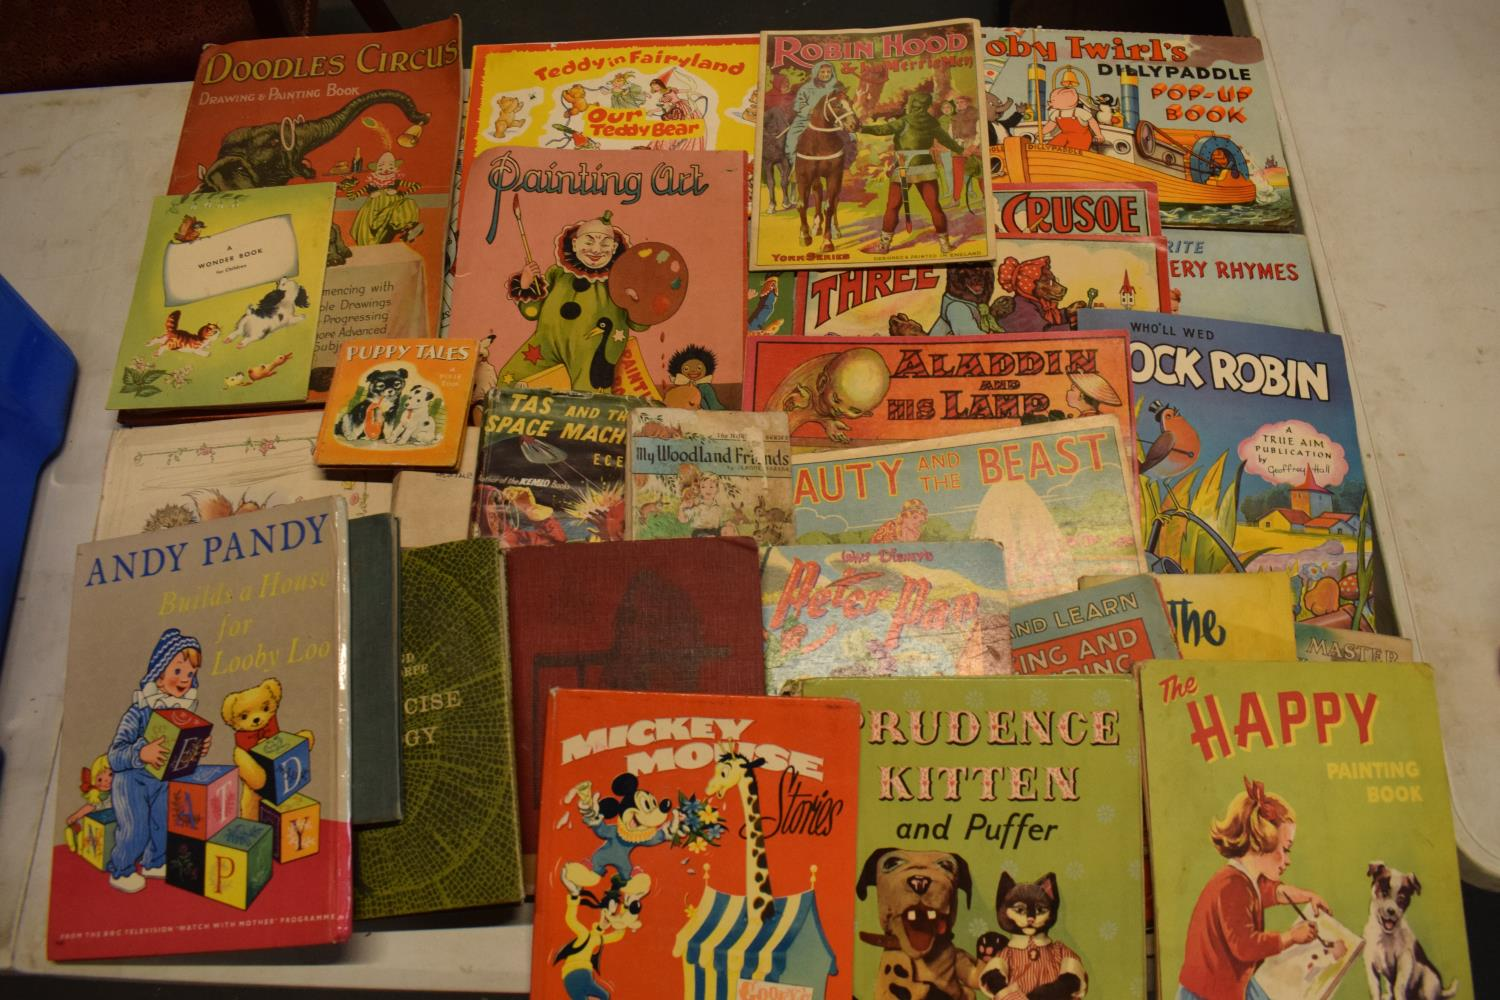 A collection of 20th century children's books to include Toby Twirls Pop Up Book, York series,